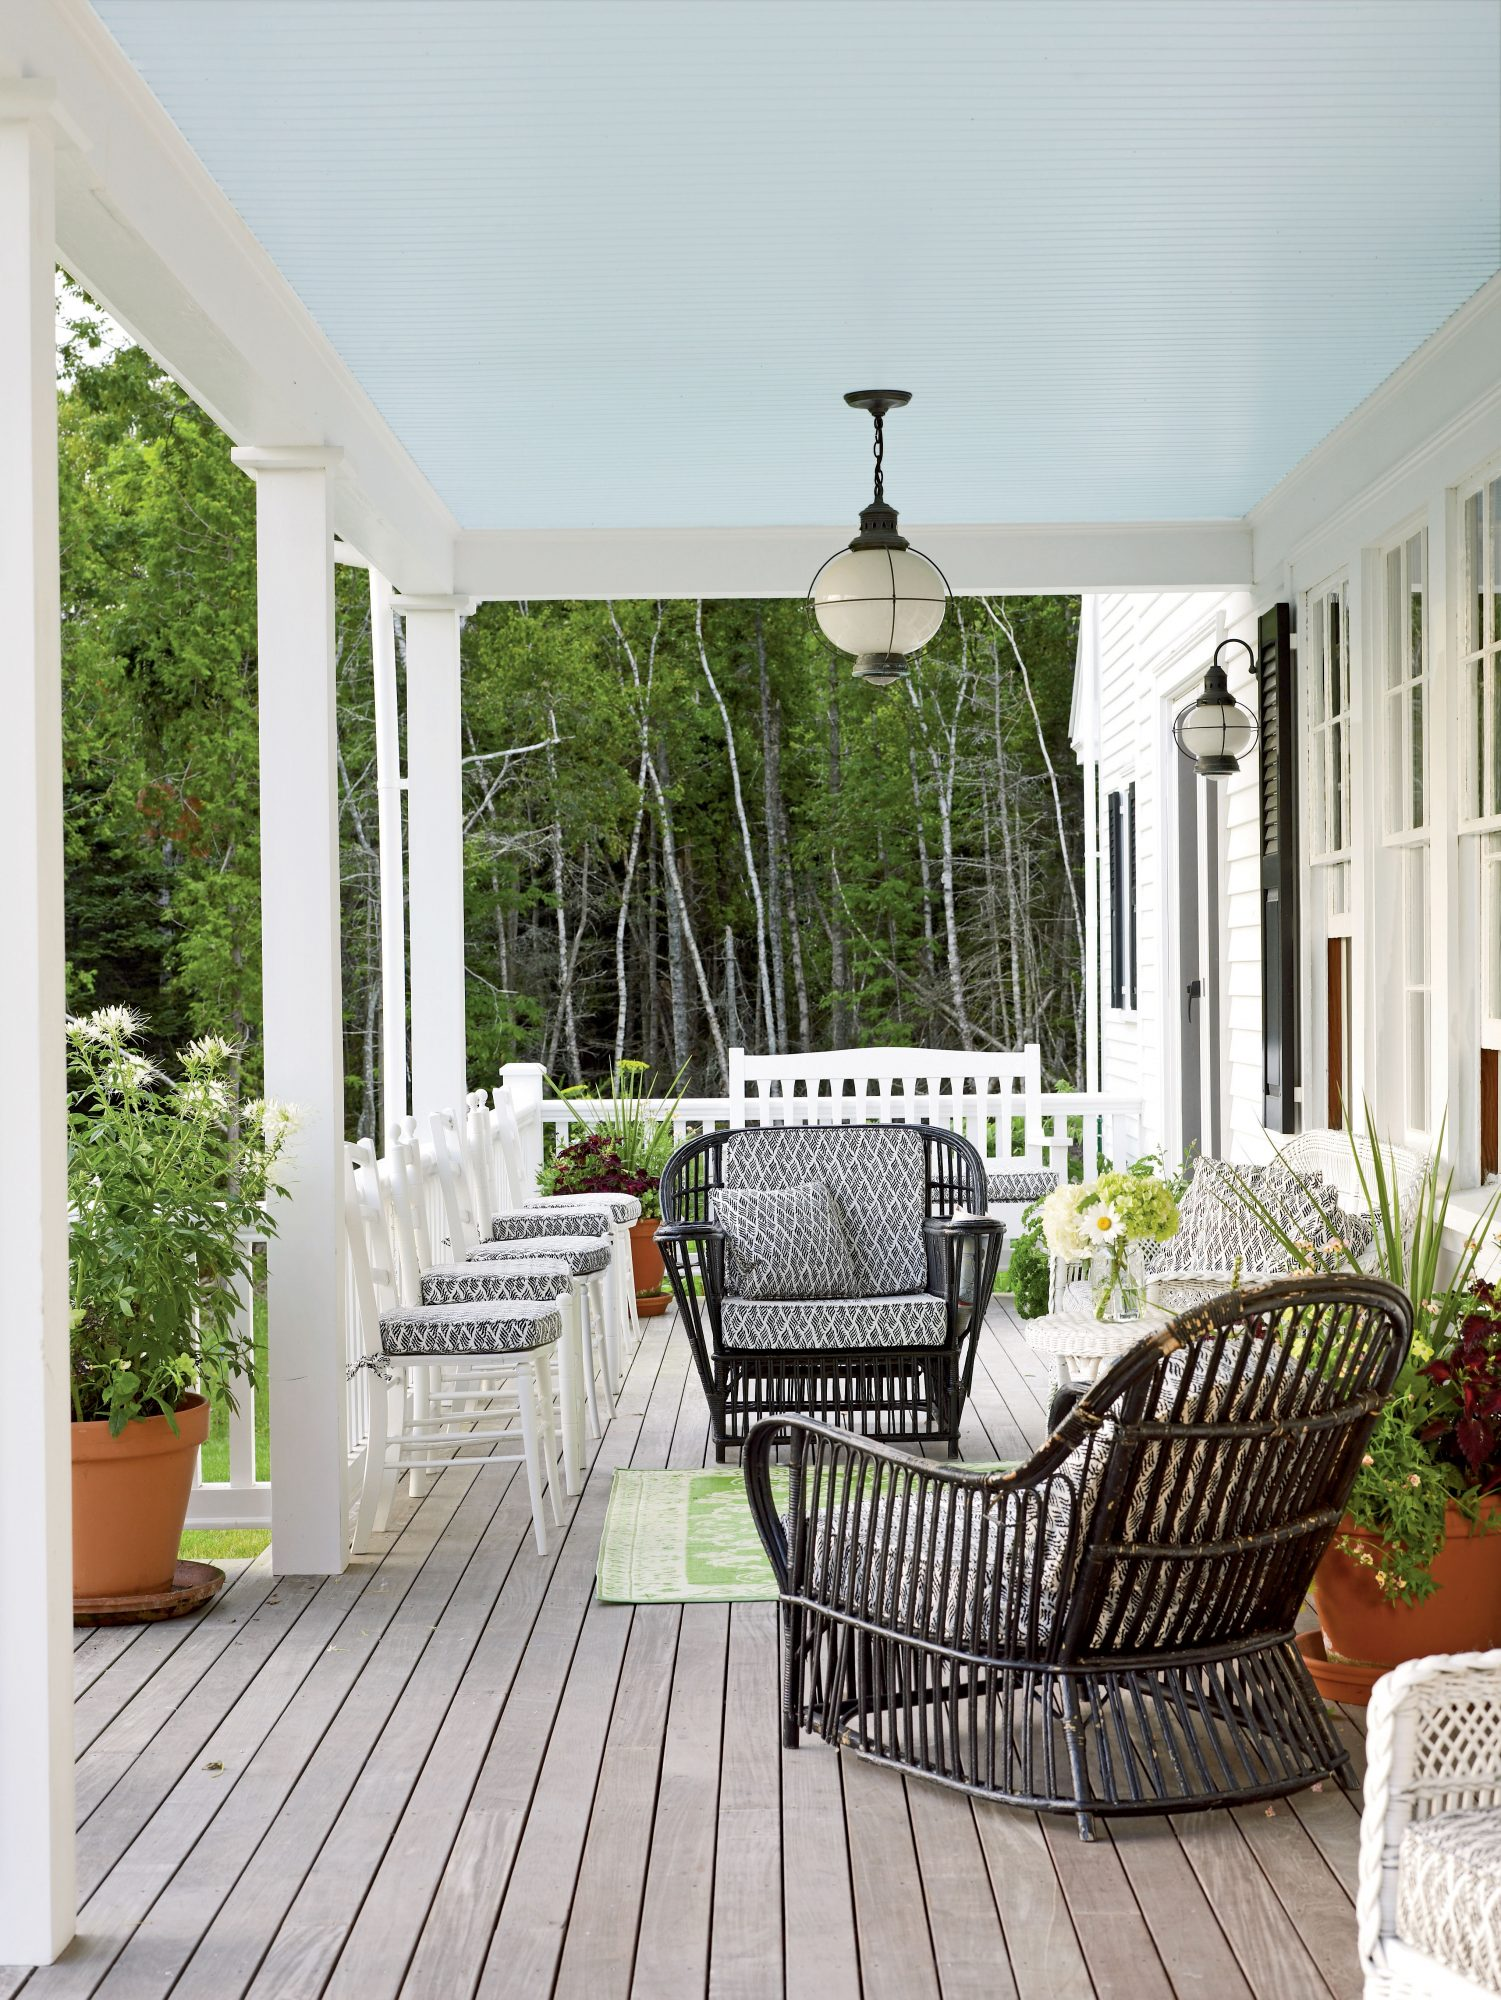 An abundant array of seating makes for a warm and inviting porch to enjoy with friends and neighbors. A lime green rug and planters add a touch of color and celebrate the surrounding foliage.